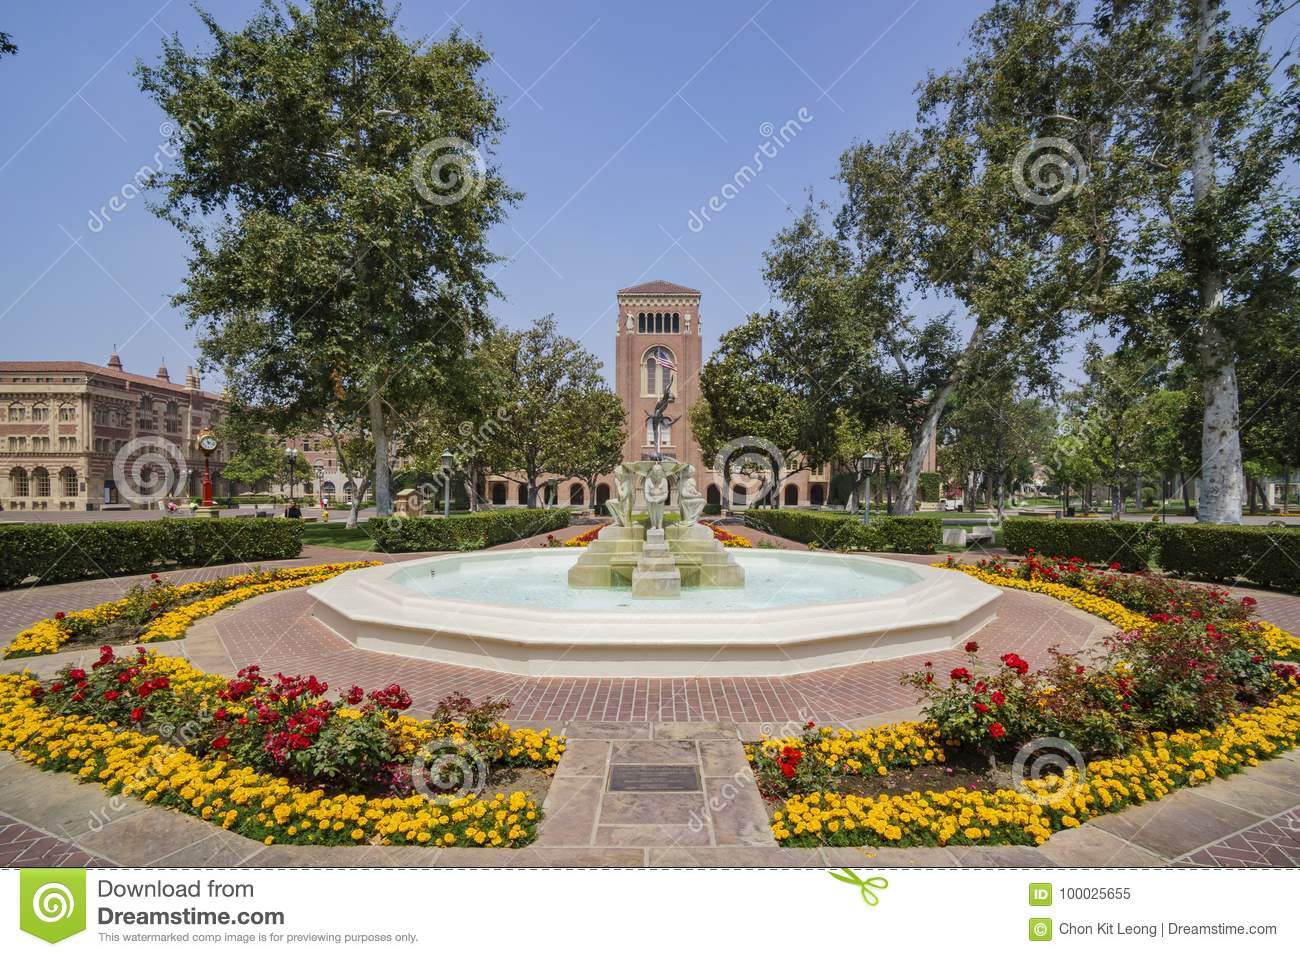 Campus Of The University Of Southern California Stock Image - Image of  yellow, angeles: 100025655